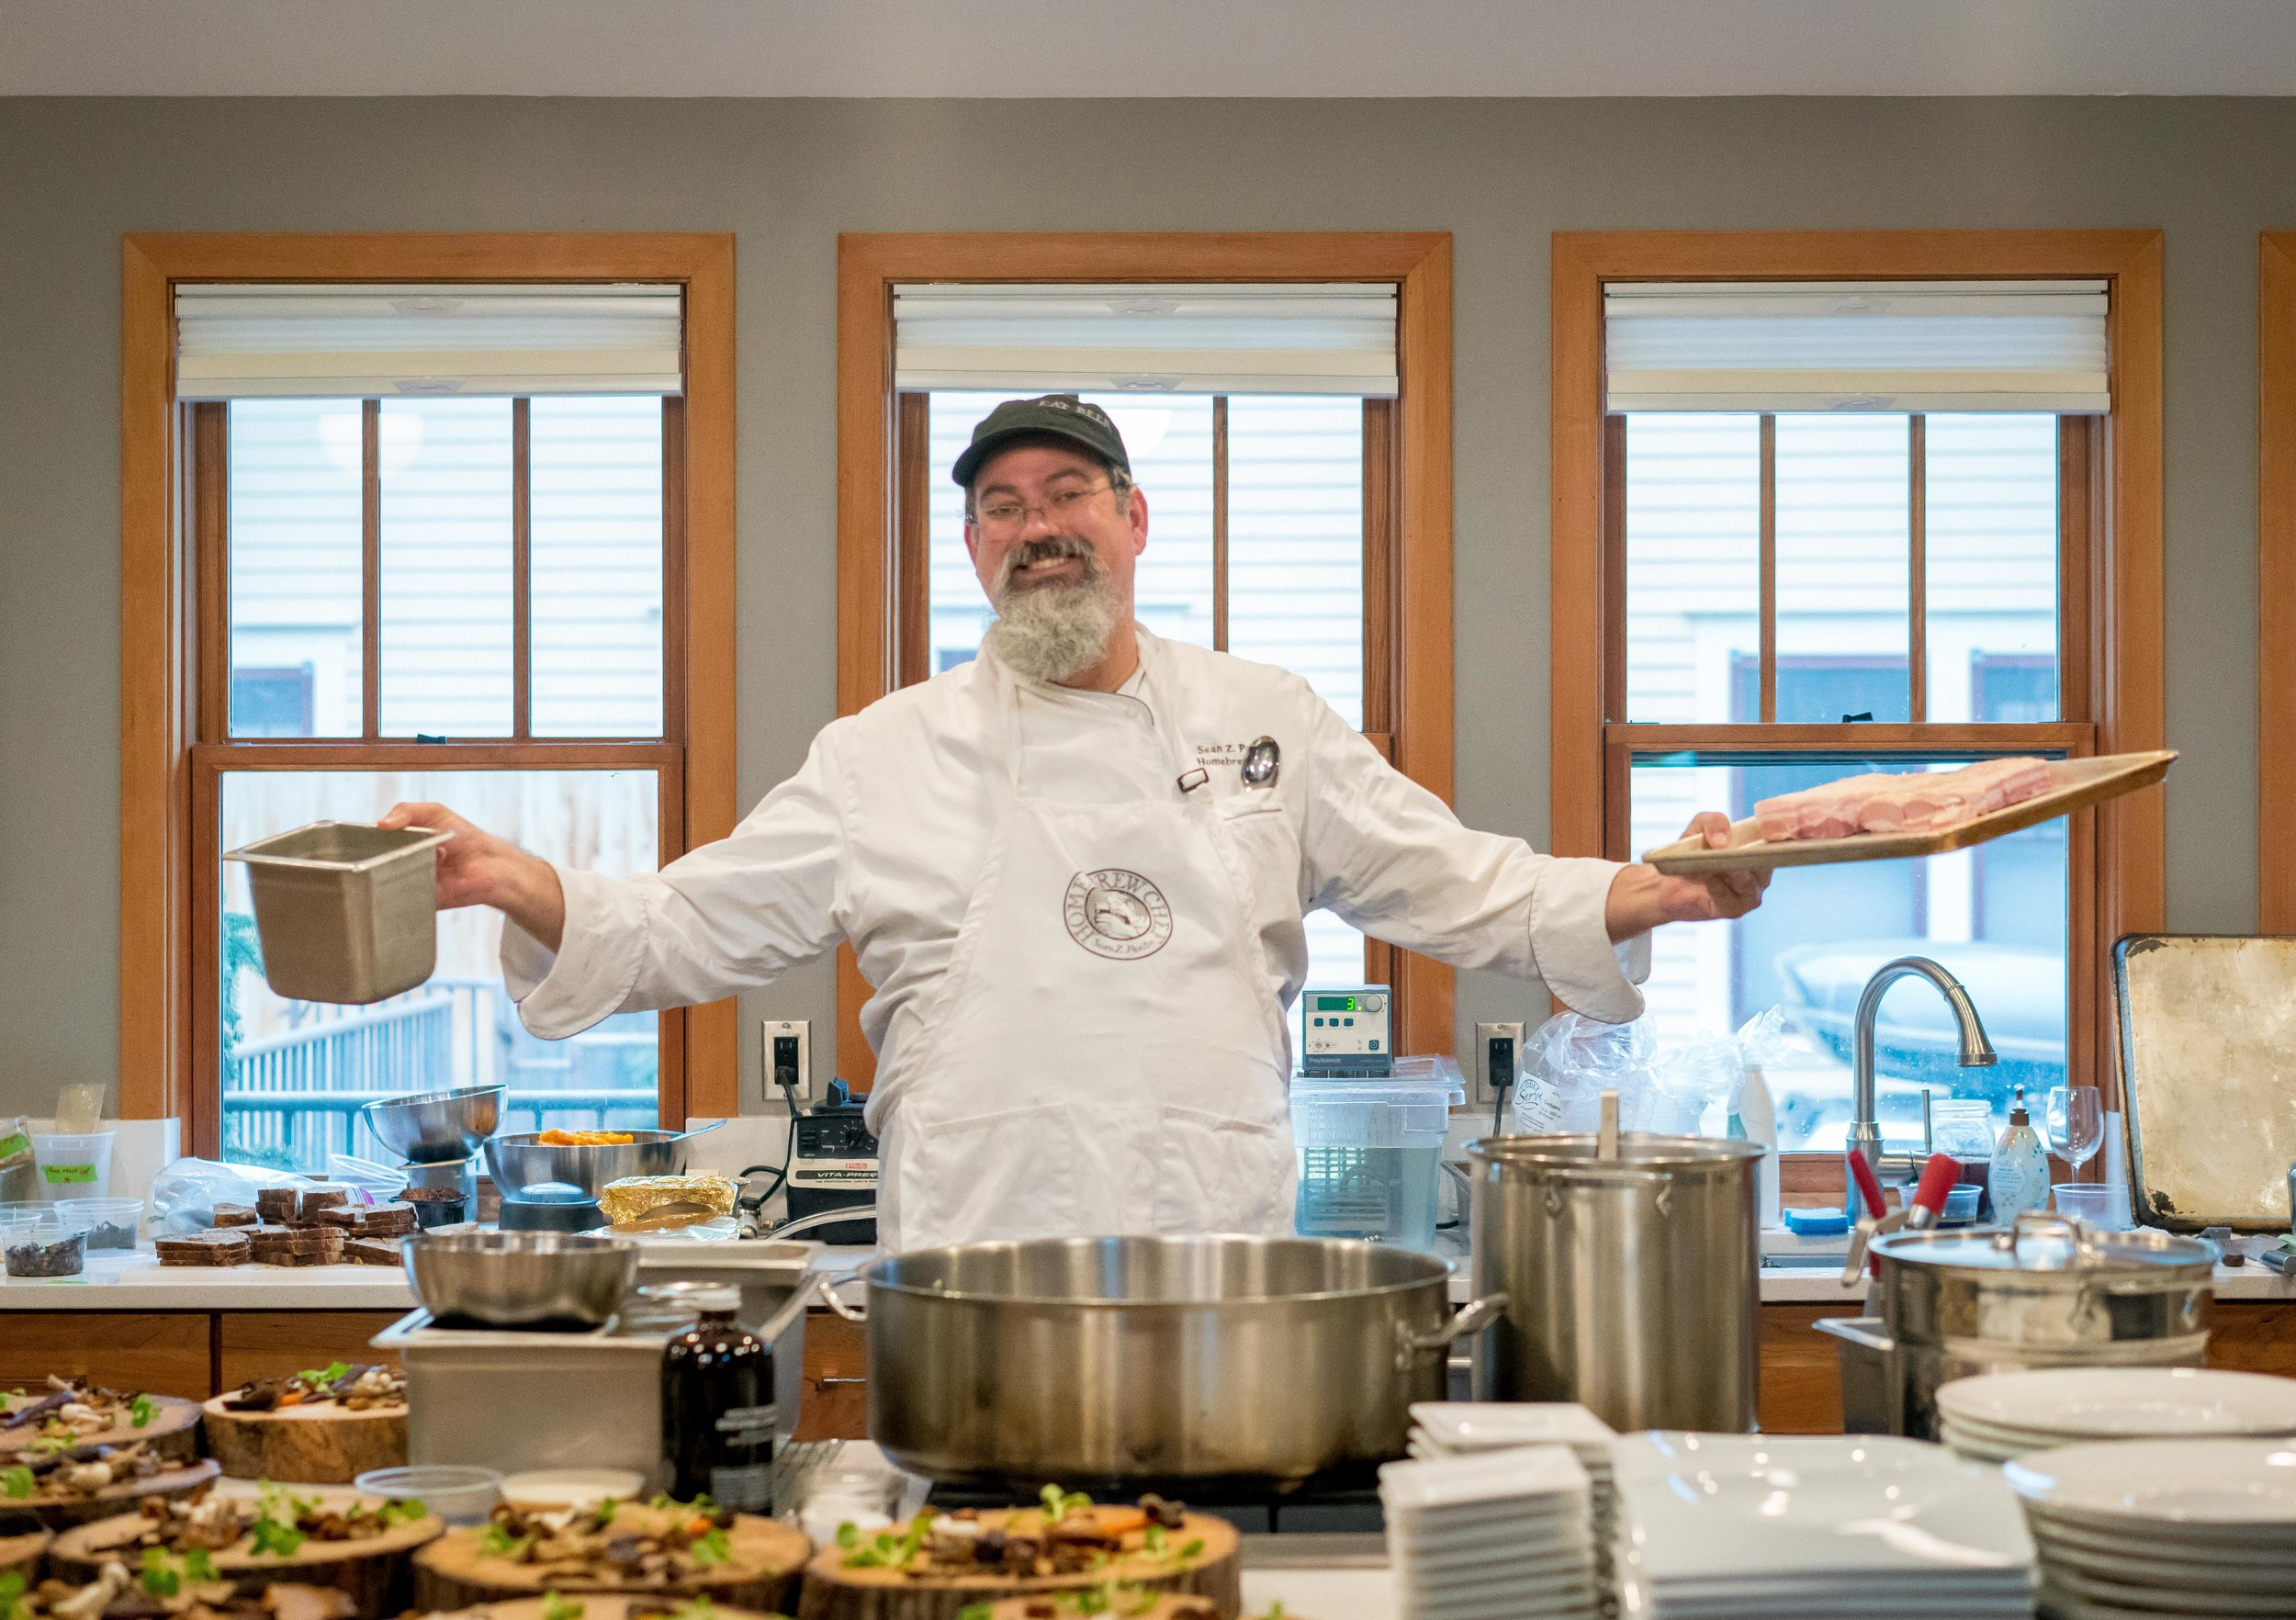 Home Brew Chef Sean Z. Paxton putting his talents and tastes on display for one of his signature feasts.